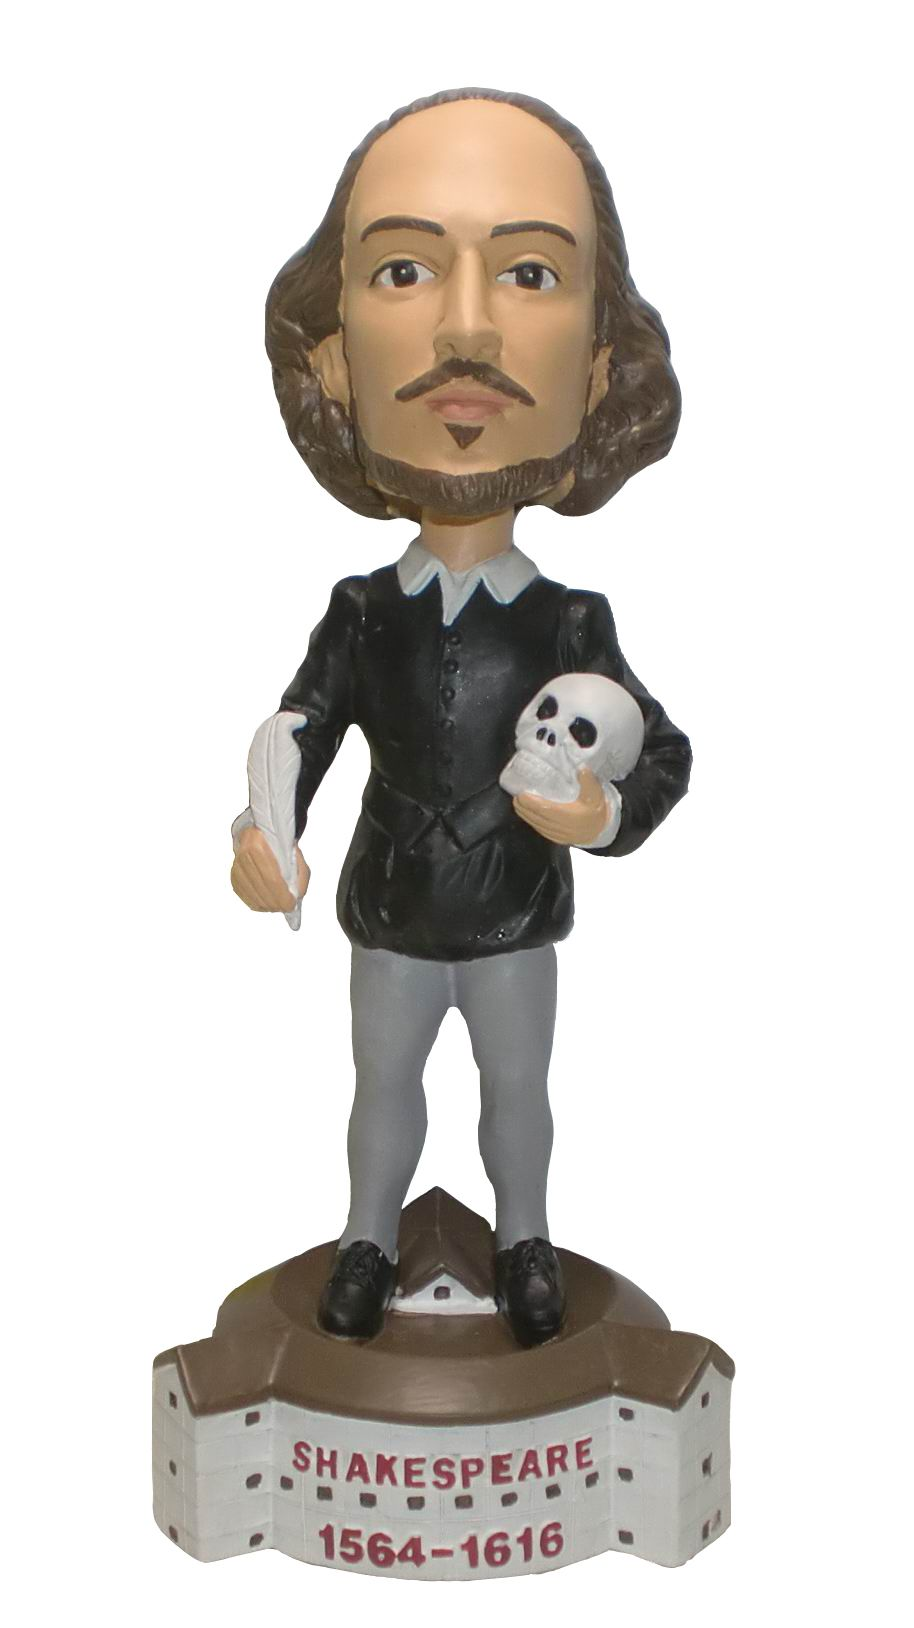 william shakespeare bobblehead thebobblehead com bobbleheads william shakespeare bobblehead thebobblehead com